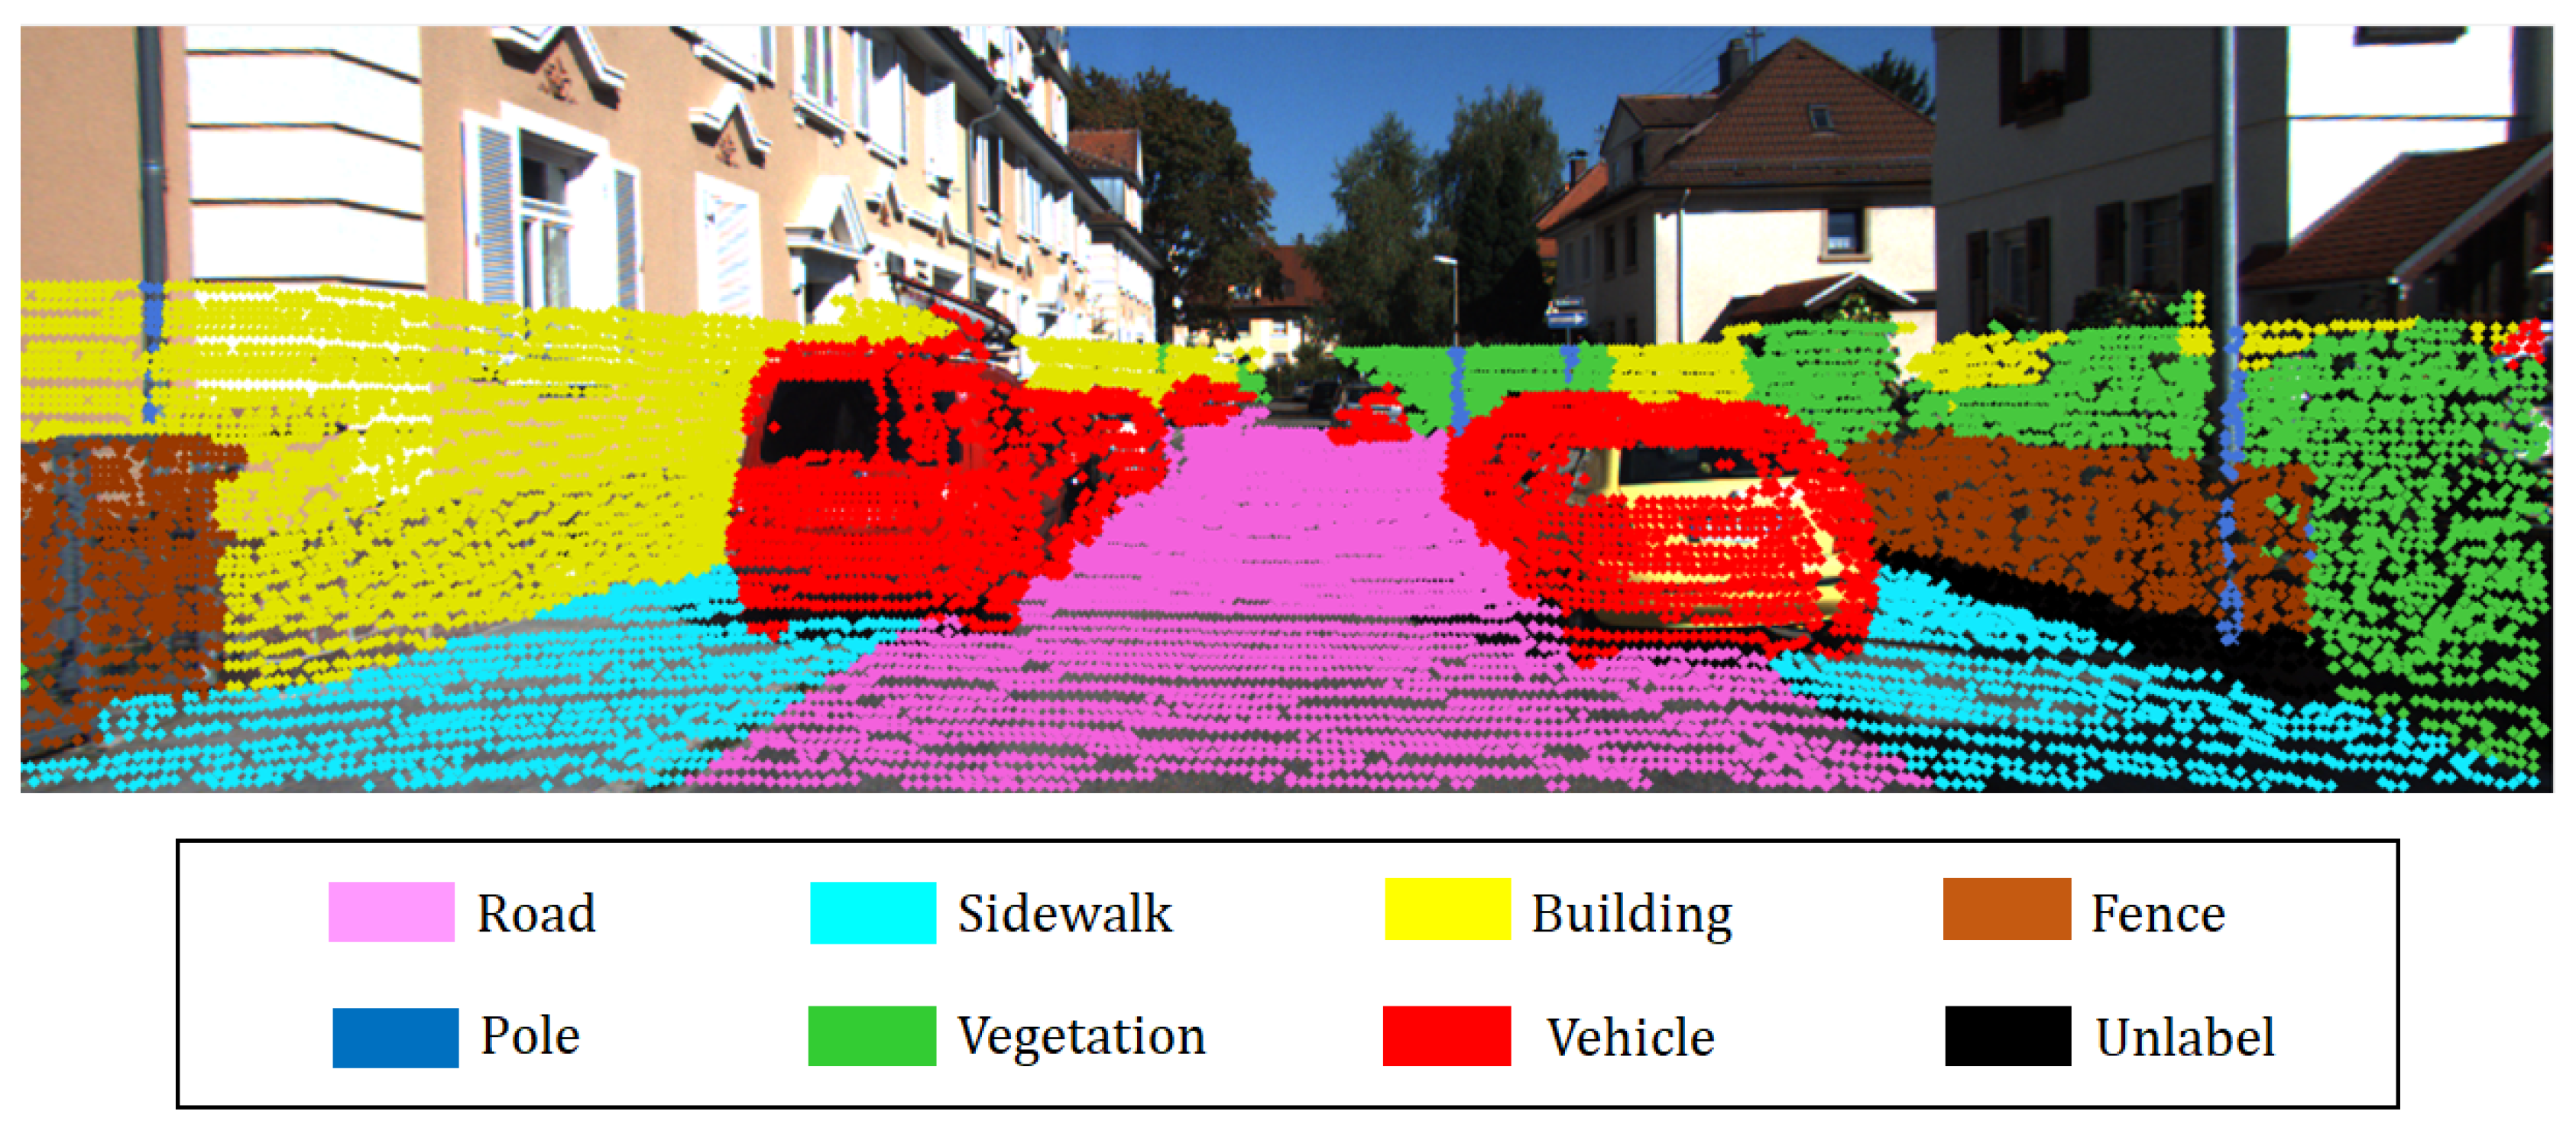 Image result for lidar example car 3d map labelled